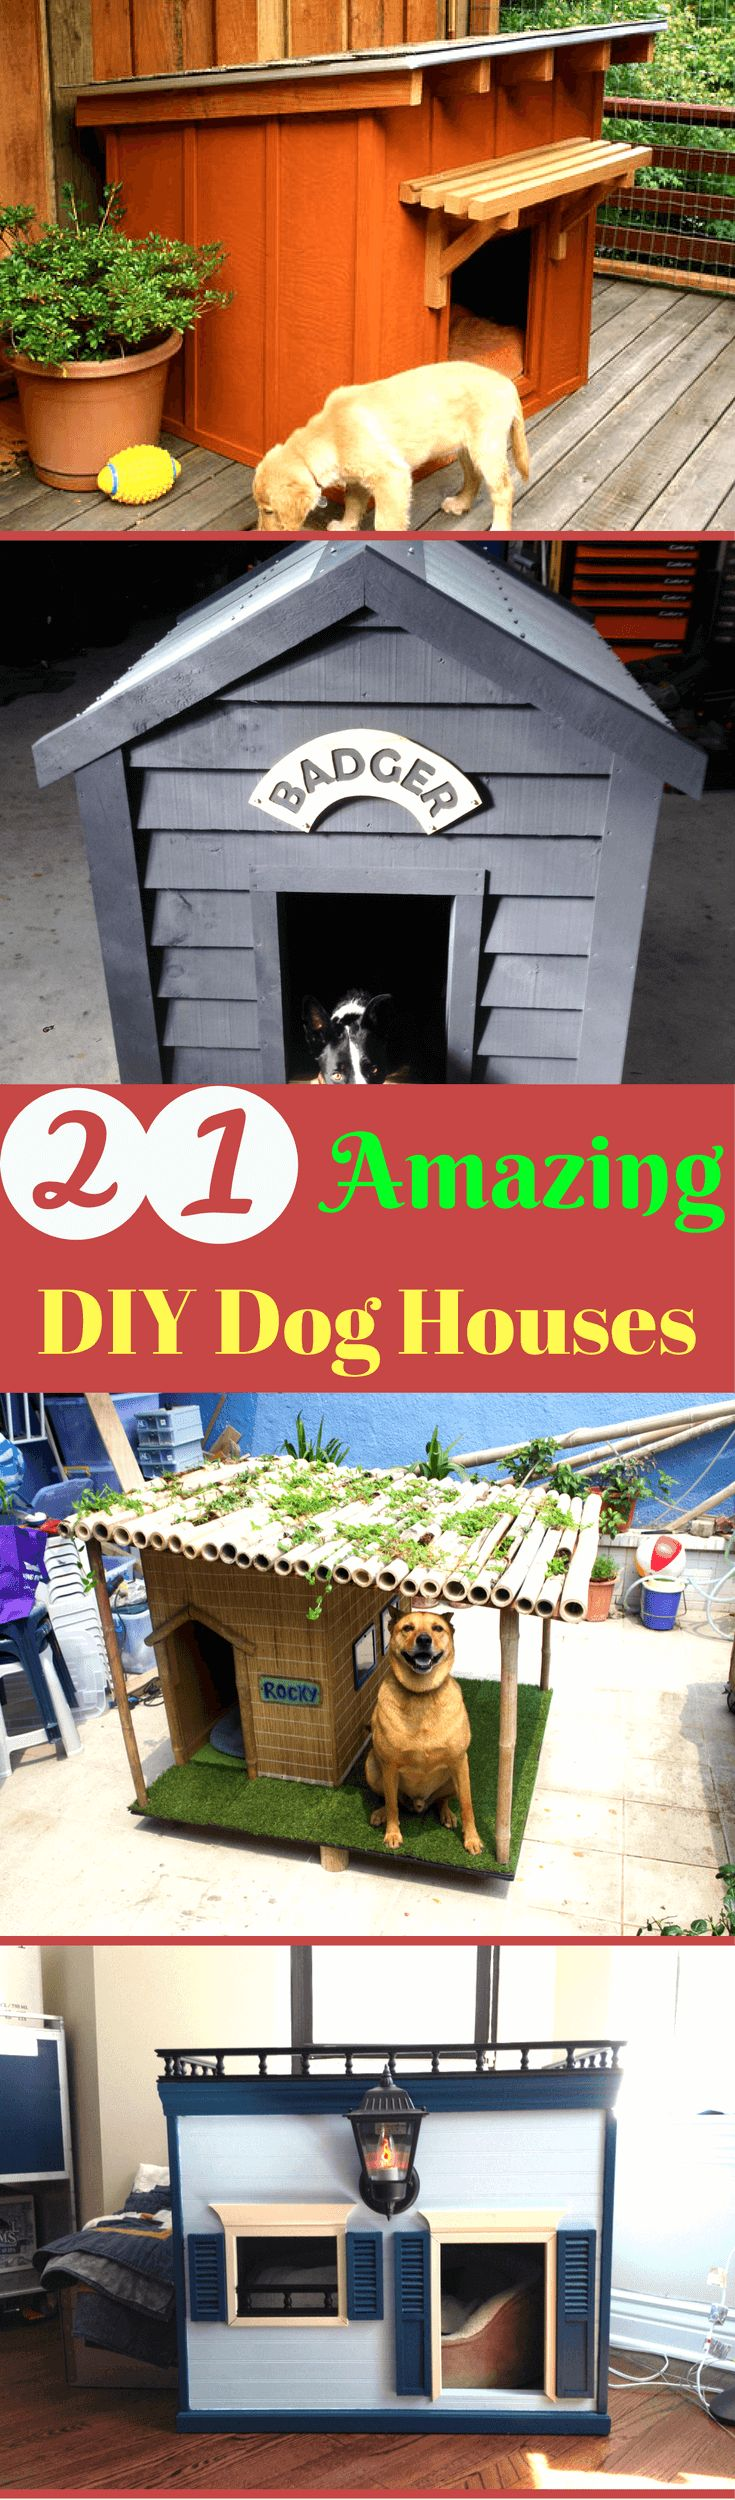 21 Awesome DIY Dog Houses With Free Step-by-Step Plans